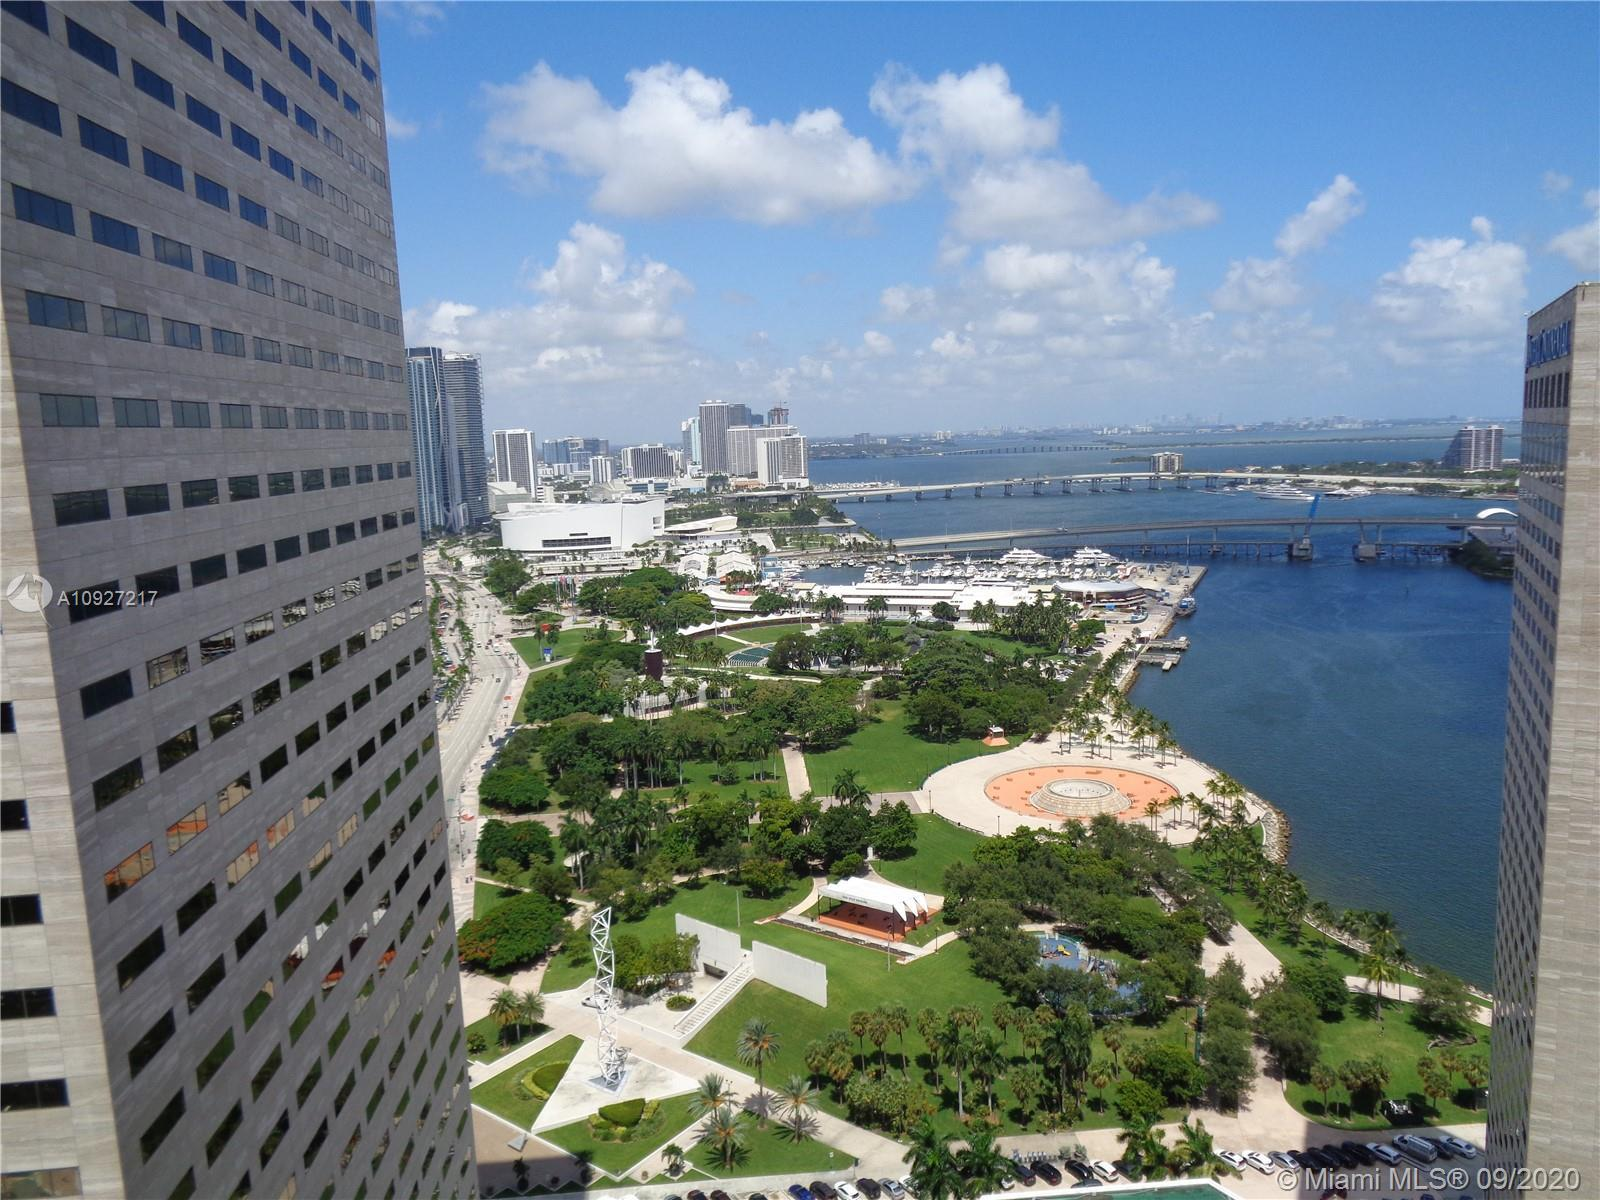 Beautiful 1 Bedroom 1 Bath overlooking Biscayne Bay and Bayfront Park. Unit comes with laminate wood